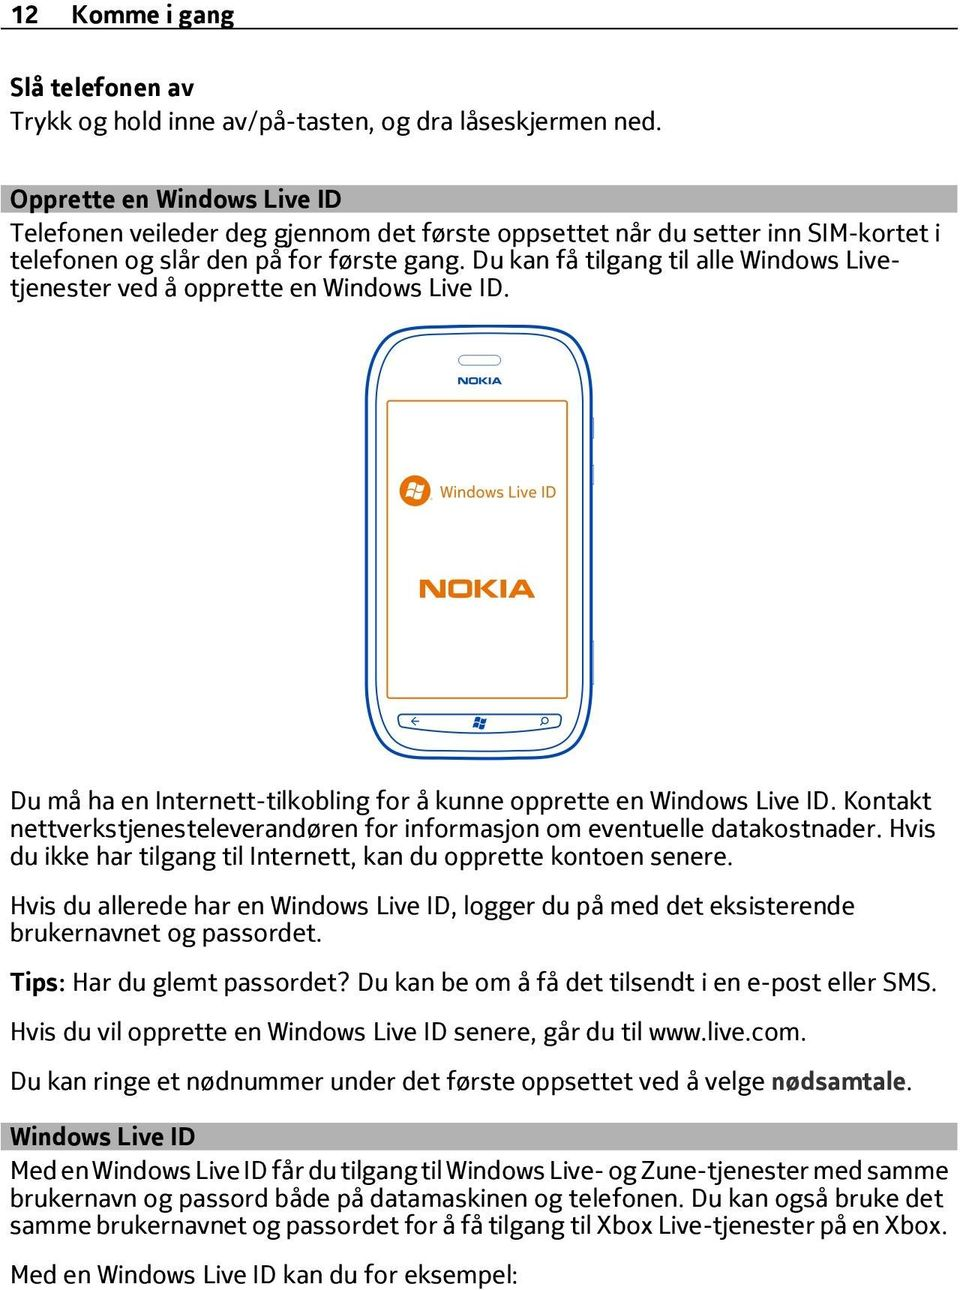 Du kan få tilgang til alle Windows Livetjenester ved å opprette en Windows Live ID. Du må ha en Internett-tilkobling for å kunne opprette en Windows Live ID.